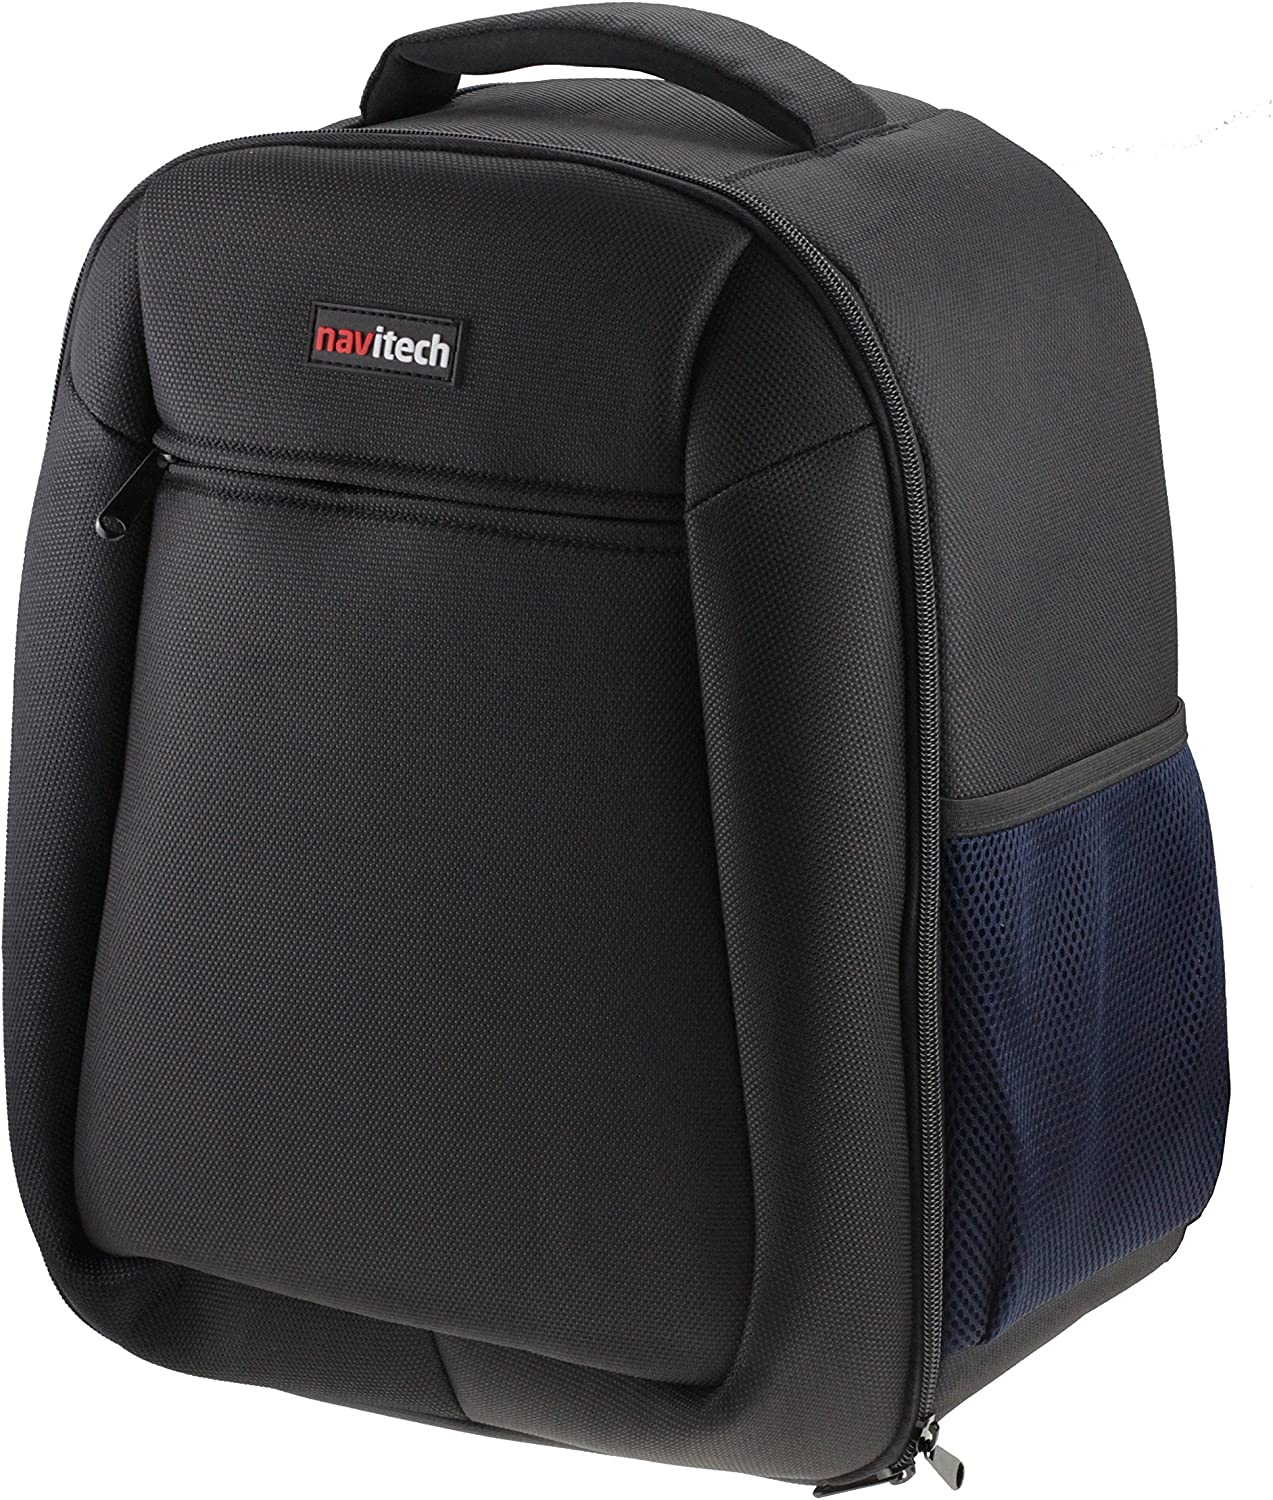 Navitech Rugged Black and Blue Backpack//Rucksack Camcorder Case Compatible with The Sony HXR-NX80 Compact 4K